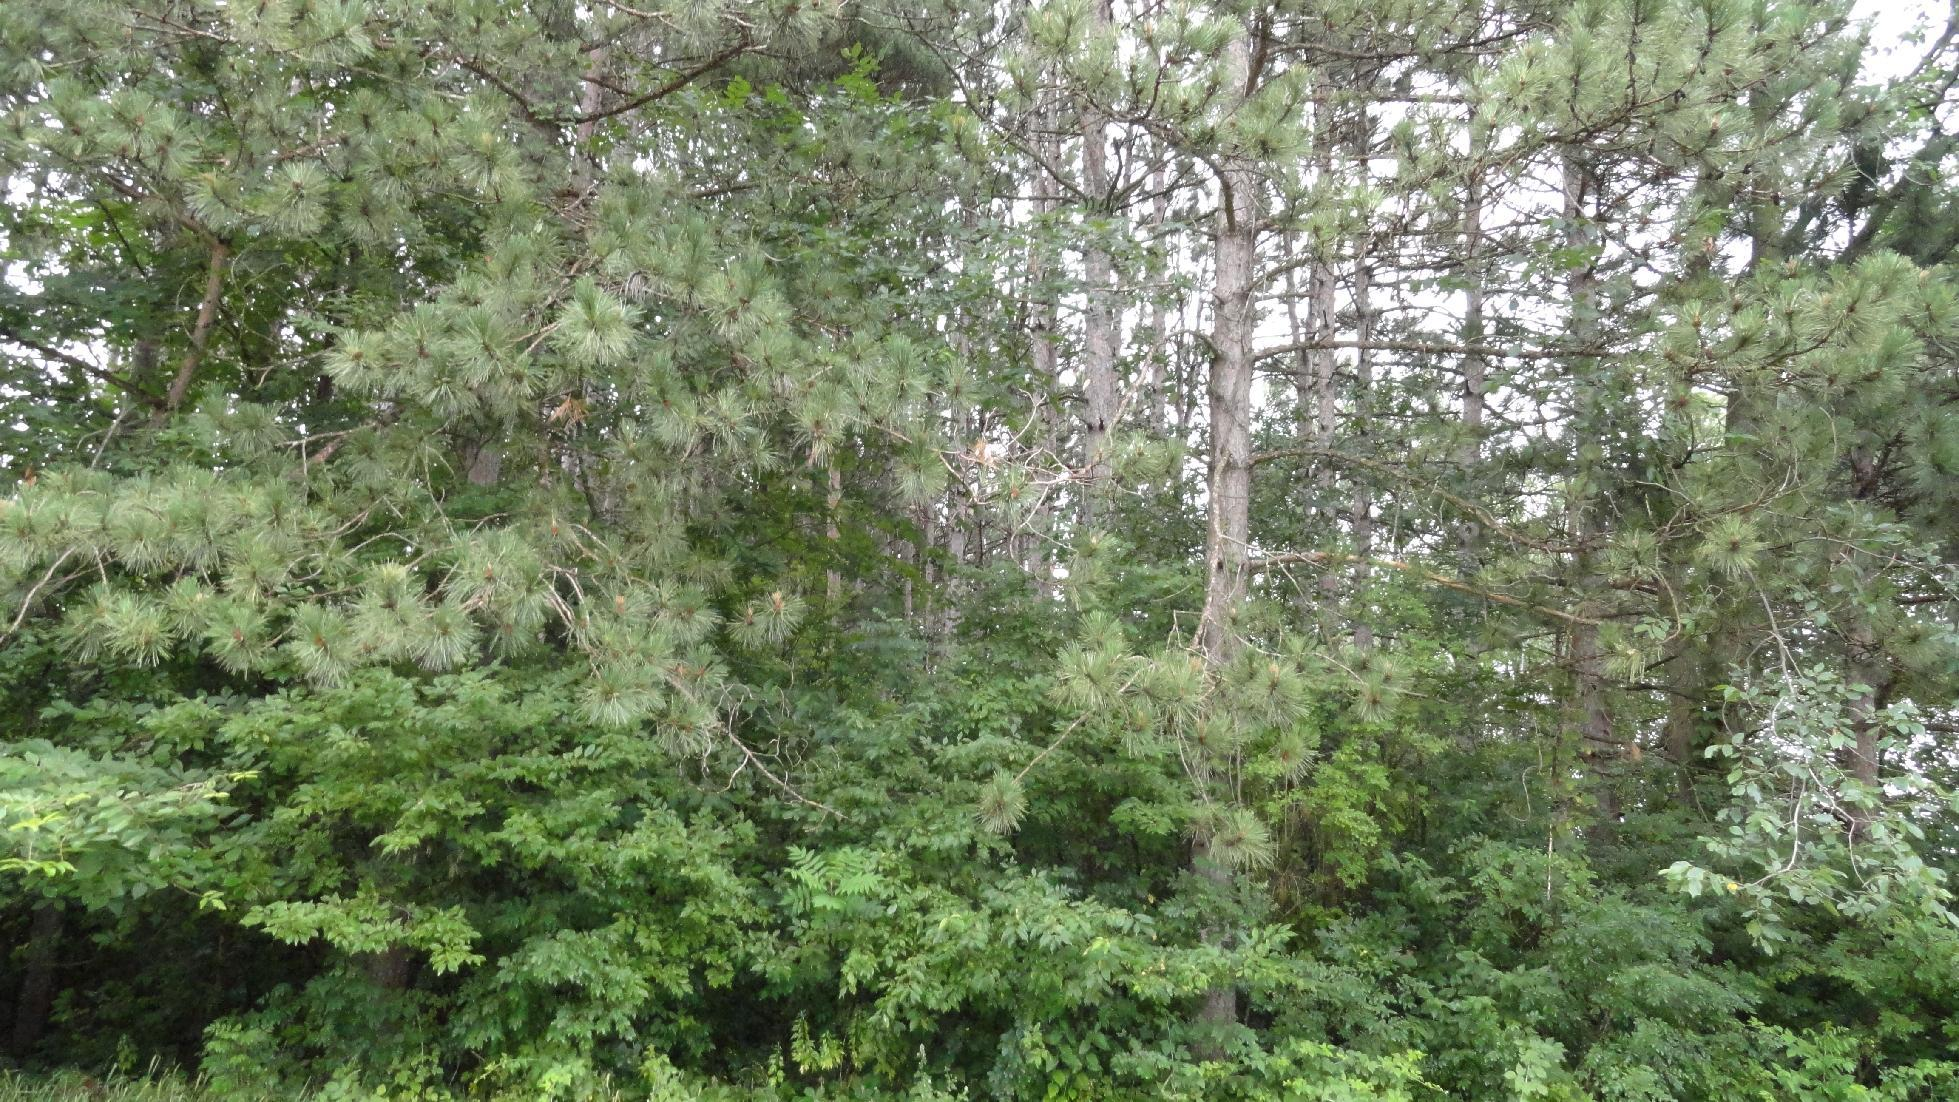 Lots 1, 3-10 Badger Avenue Property Photo - Bass Lake Twp, WI real estate listing